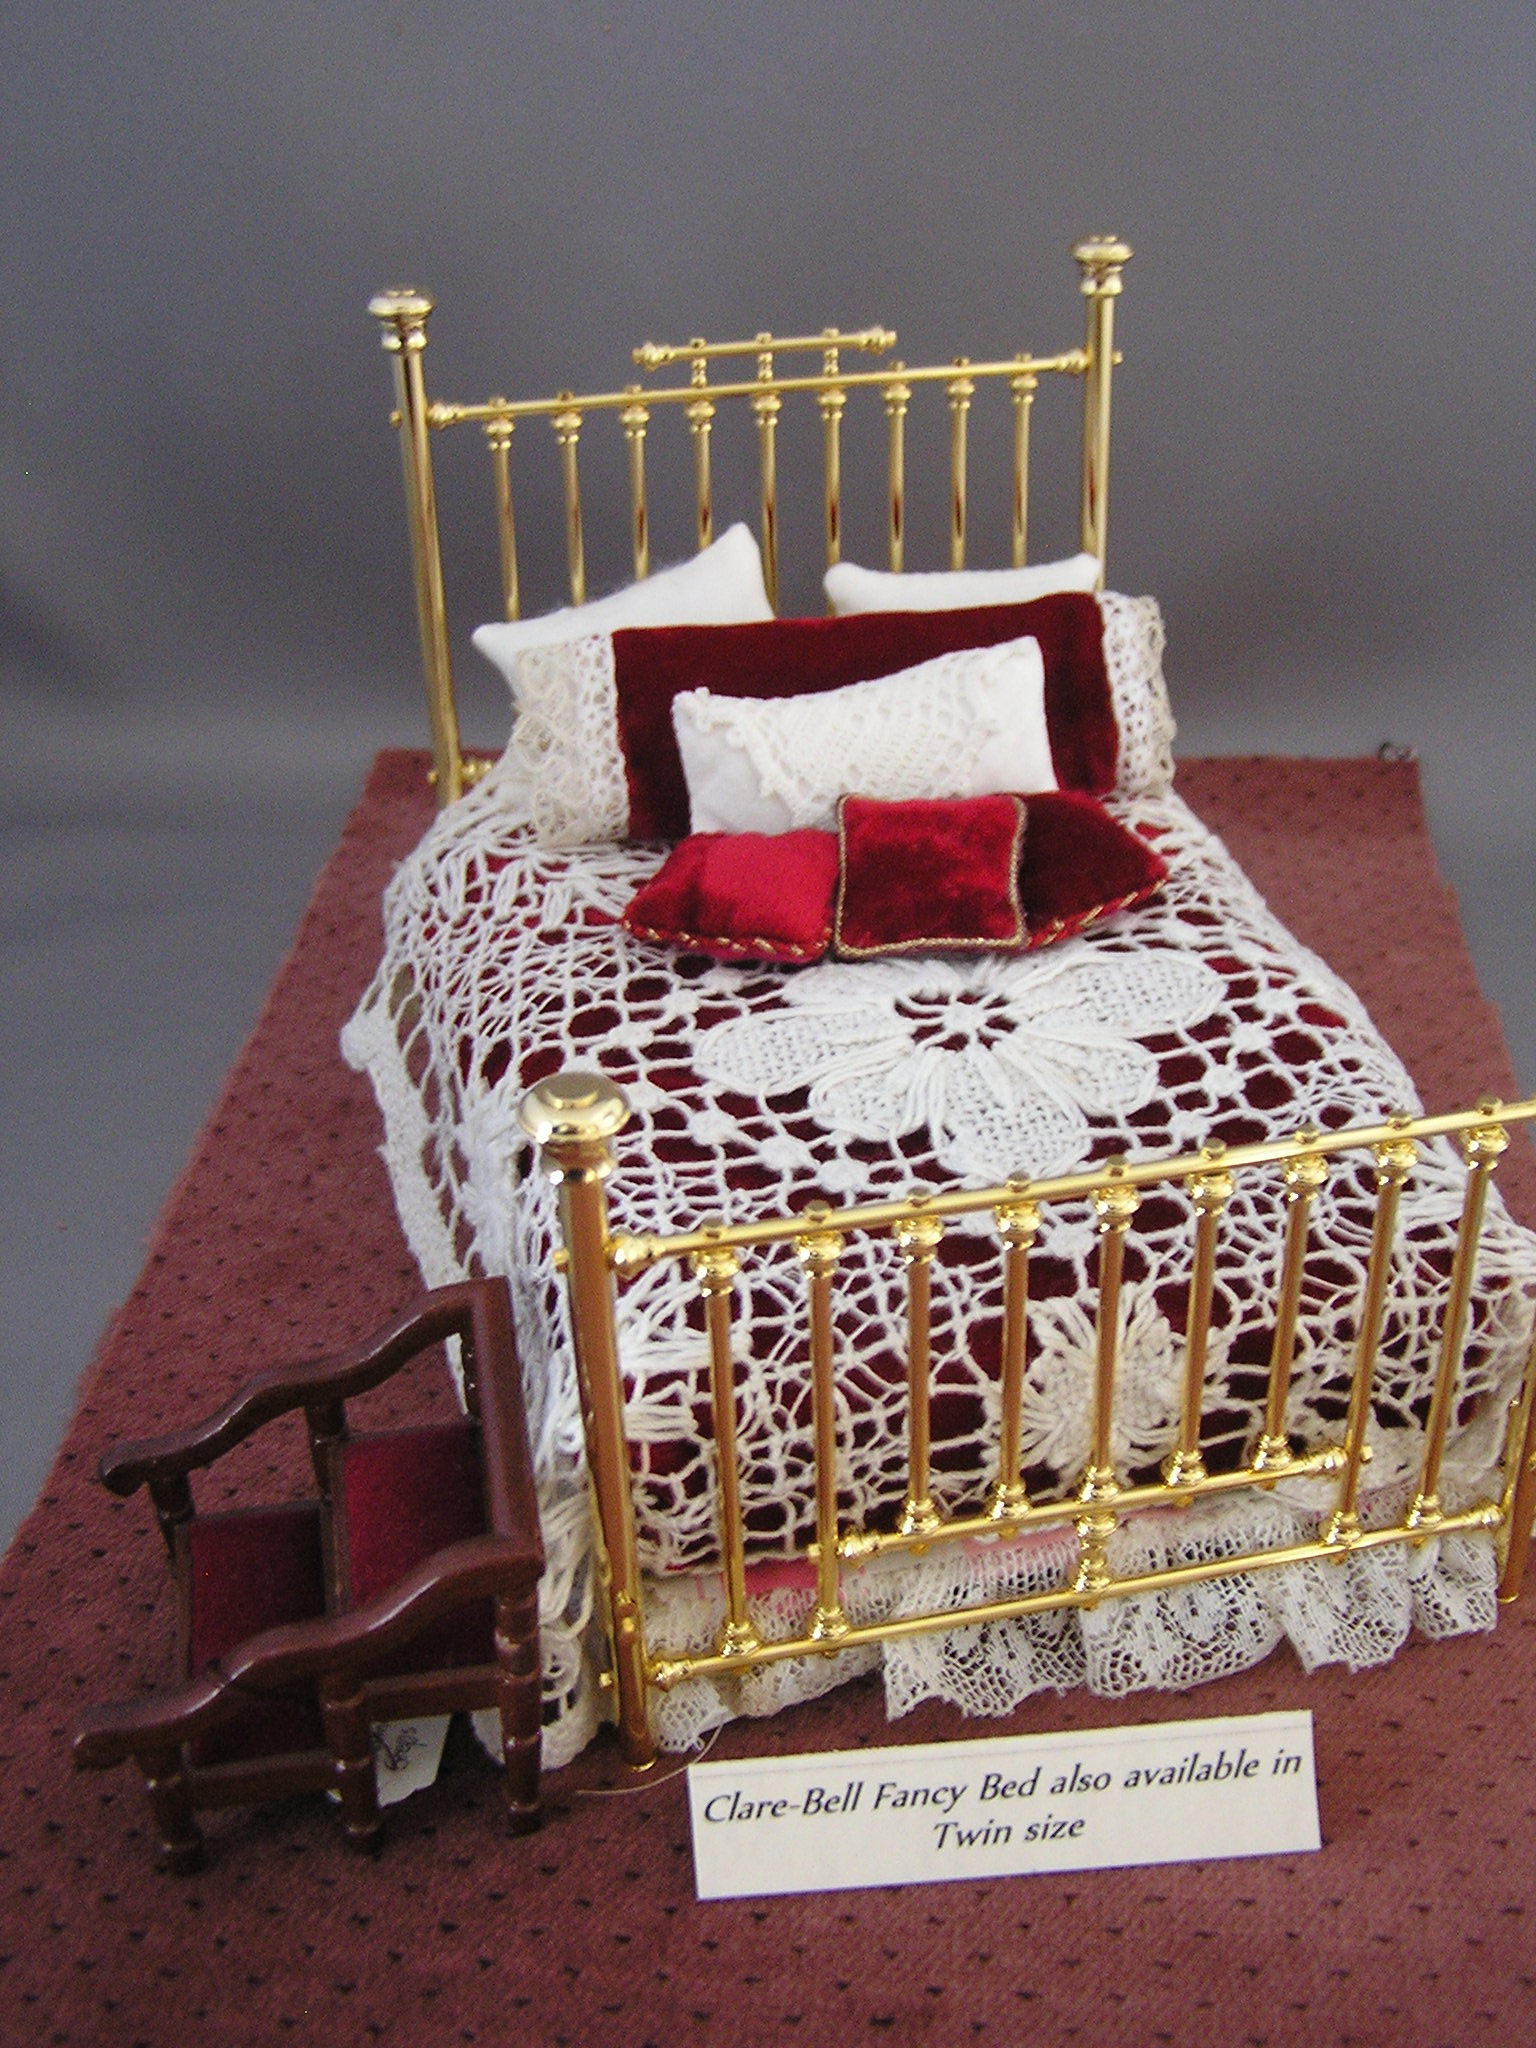 Potpourri-filled Mattress: for Clare Bell Brass Beds